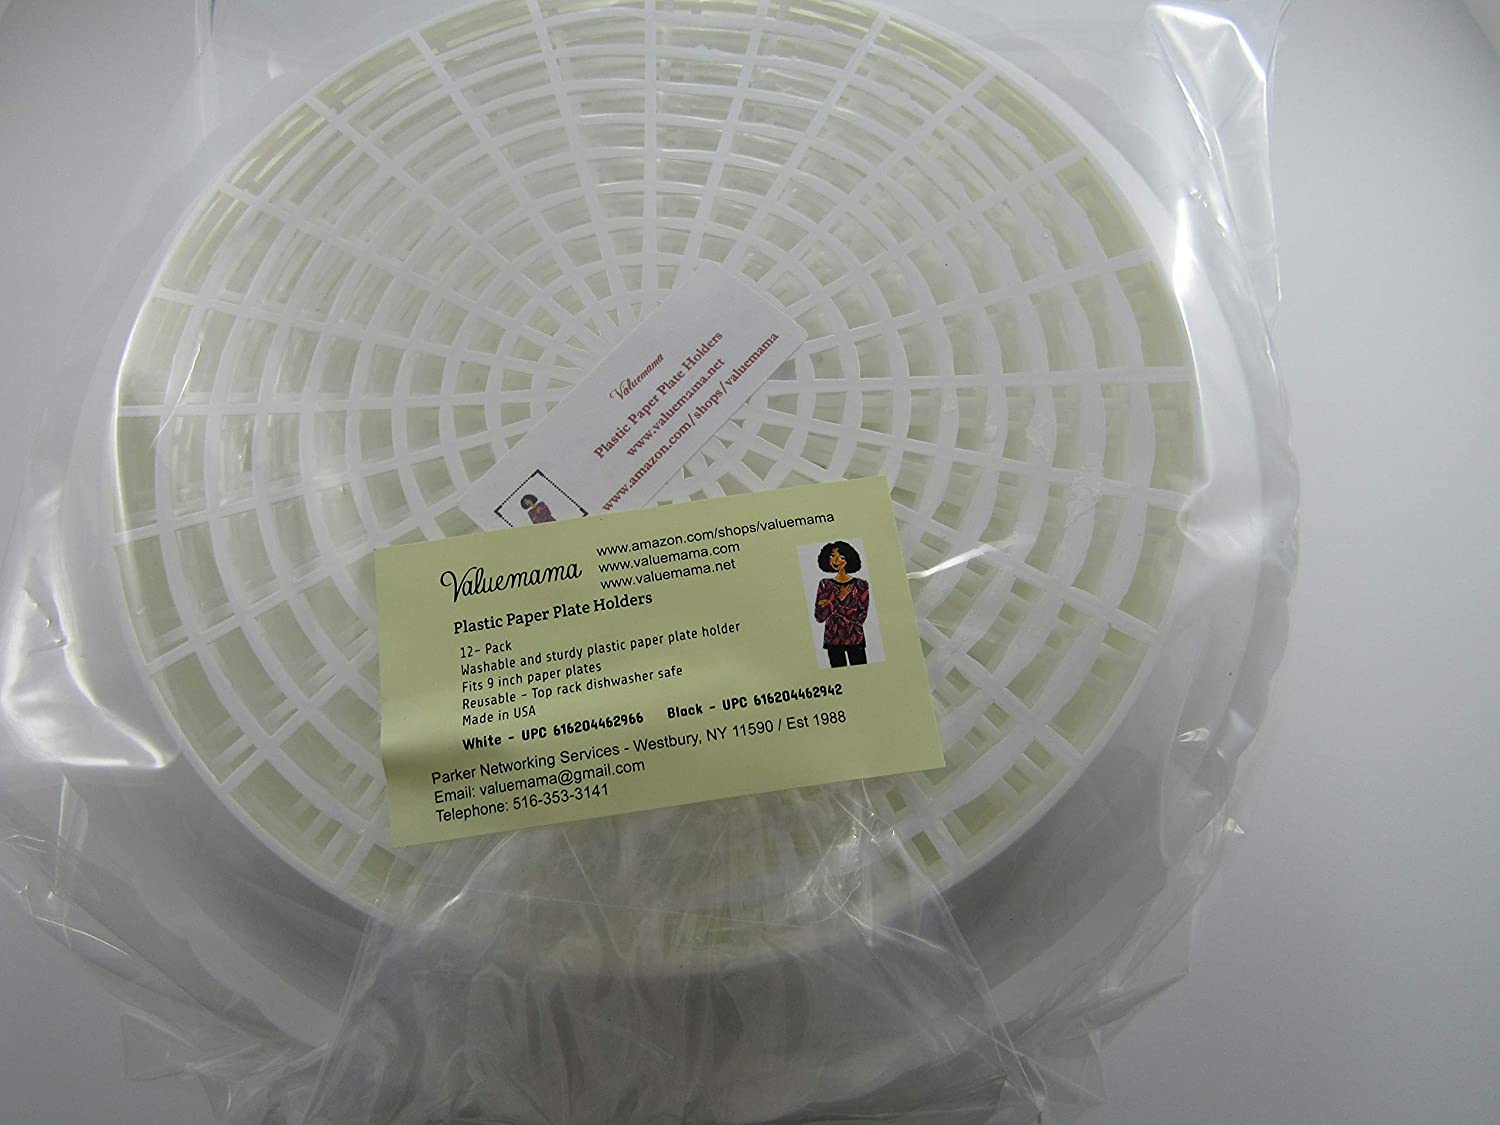 Paper Plate Holders Plastic Heavy Duty Reusable And Durable 9-Inch White 12 Pack